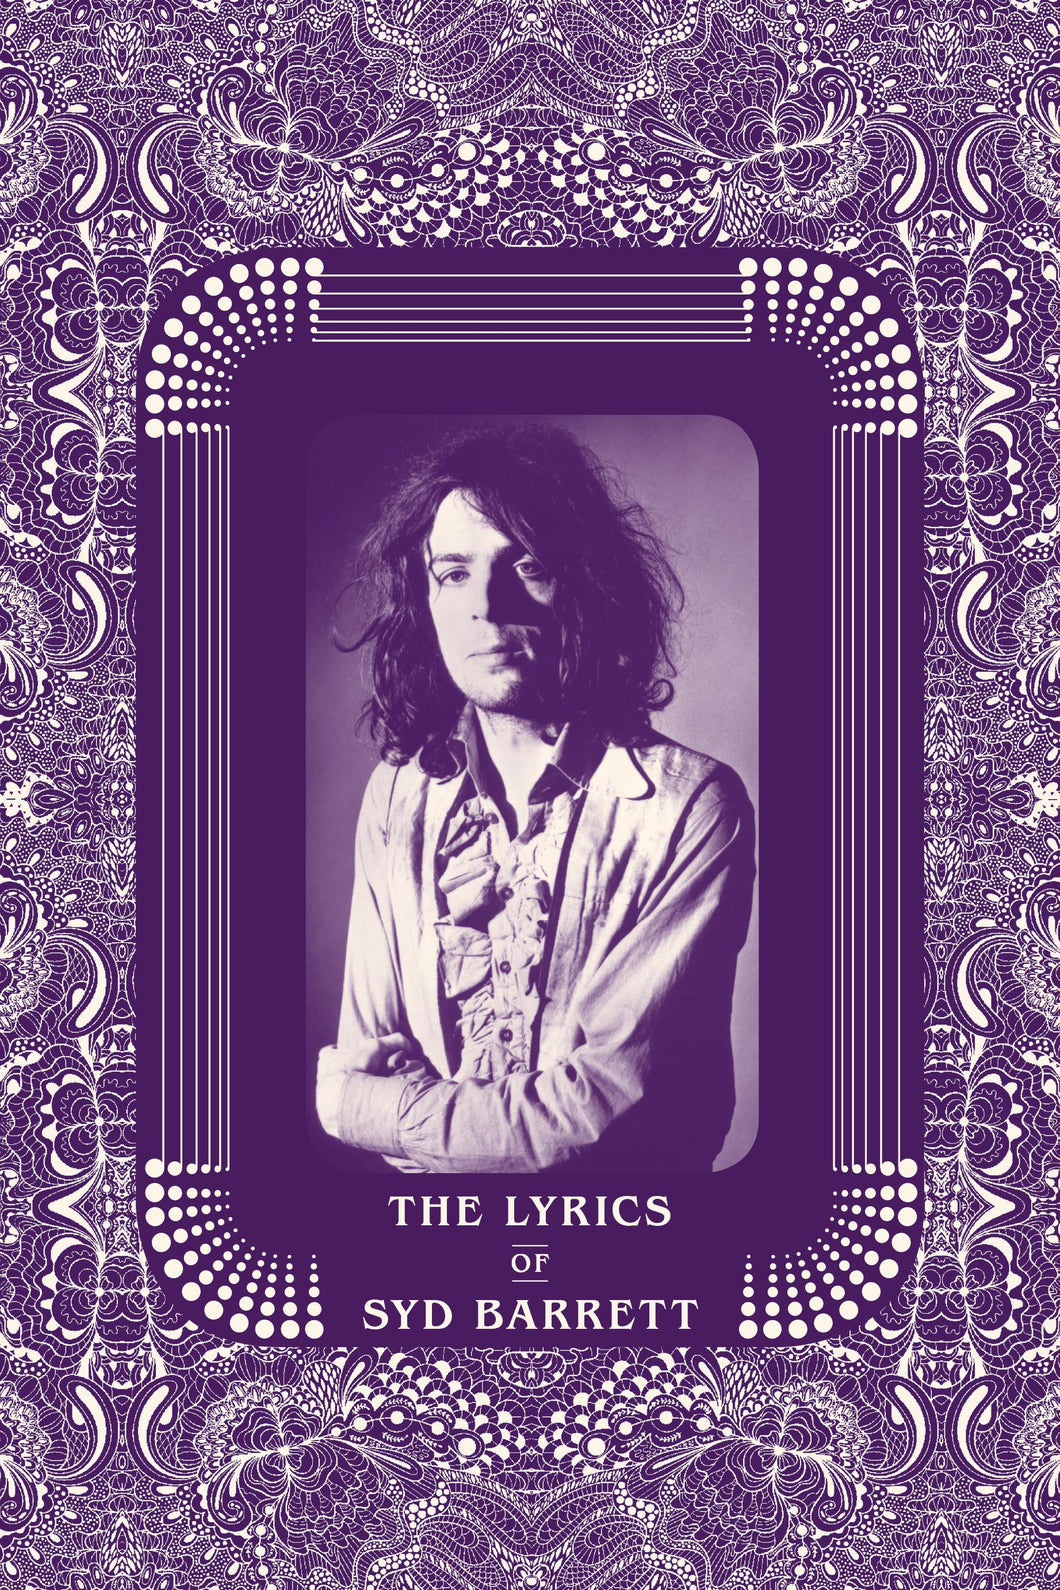 The Lyrics of Syd Barrett - Published on 18th February 2021